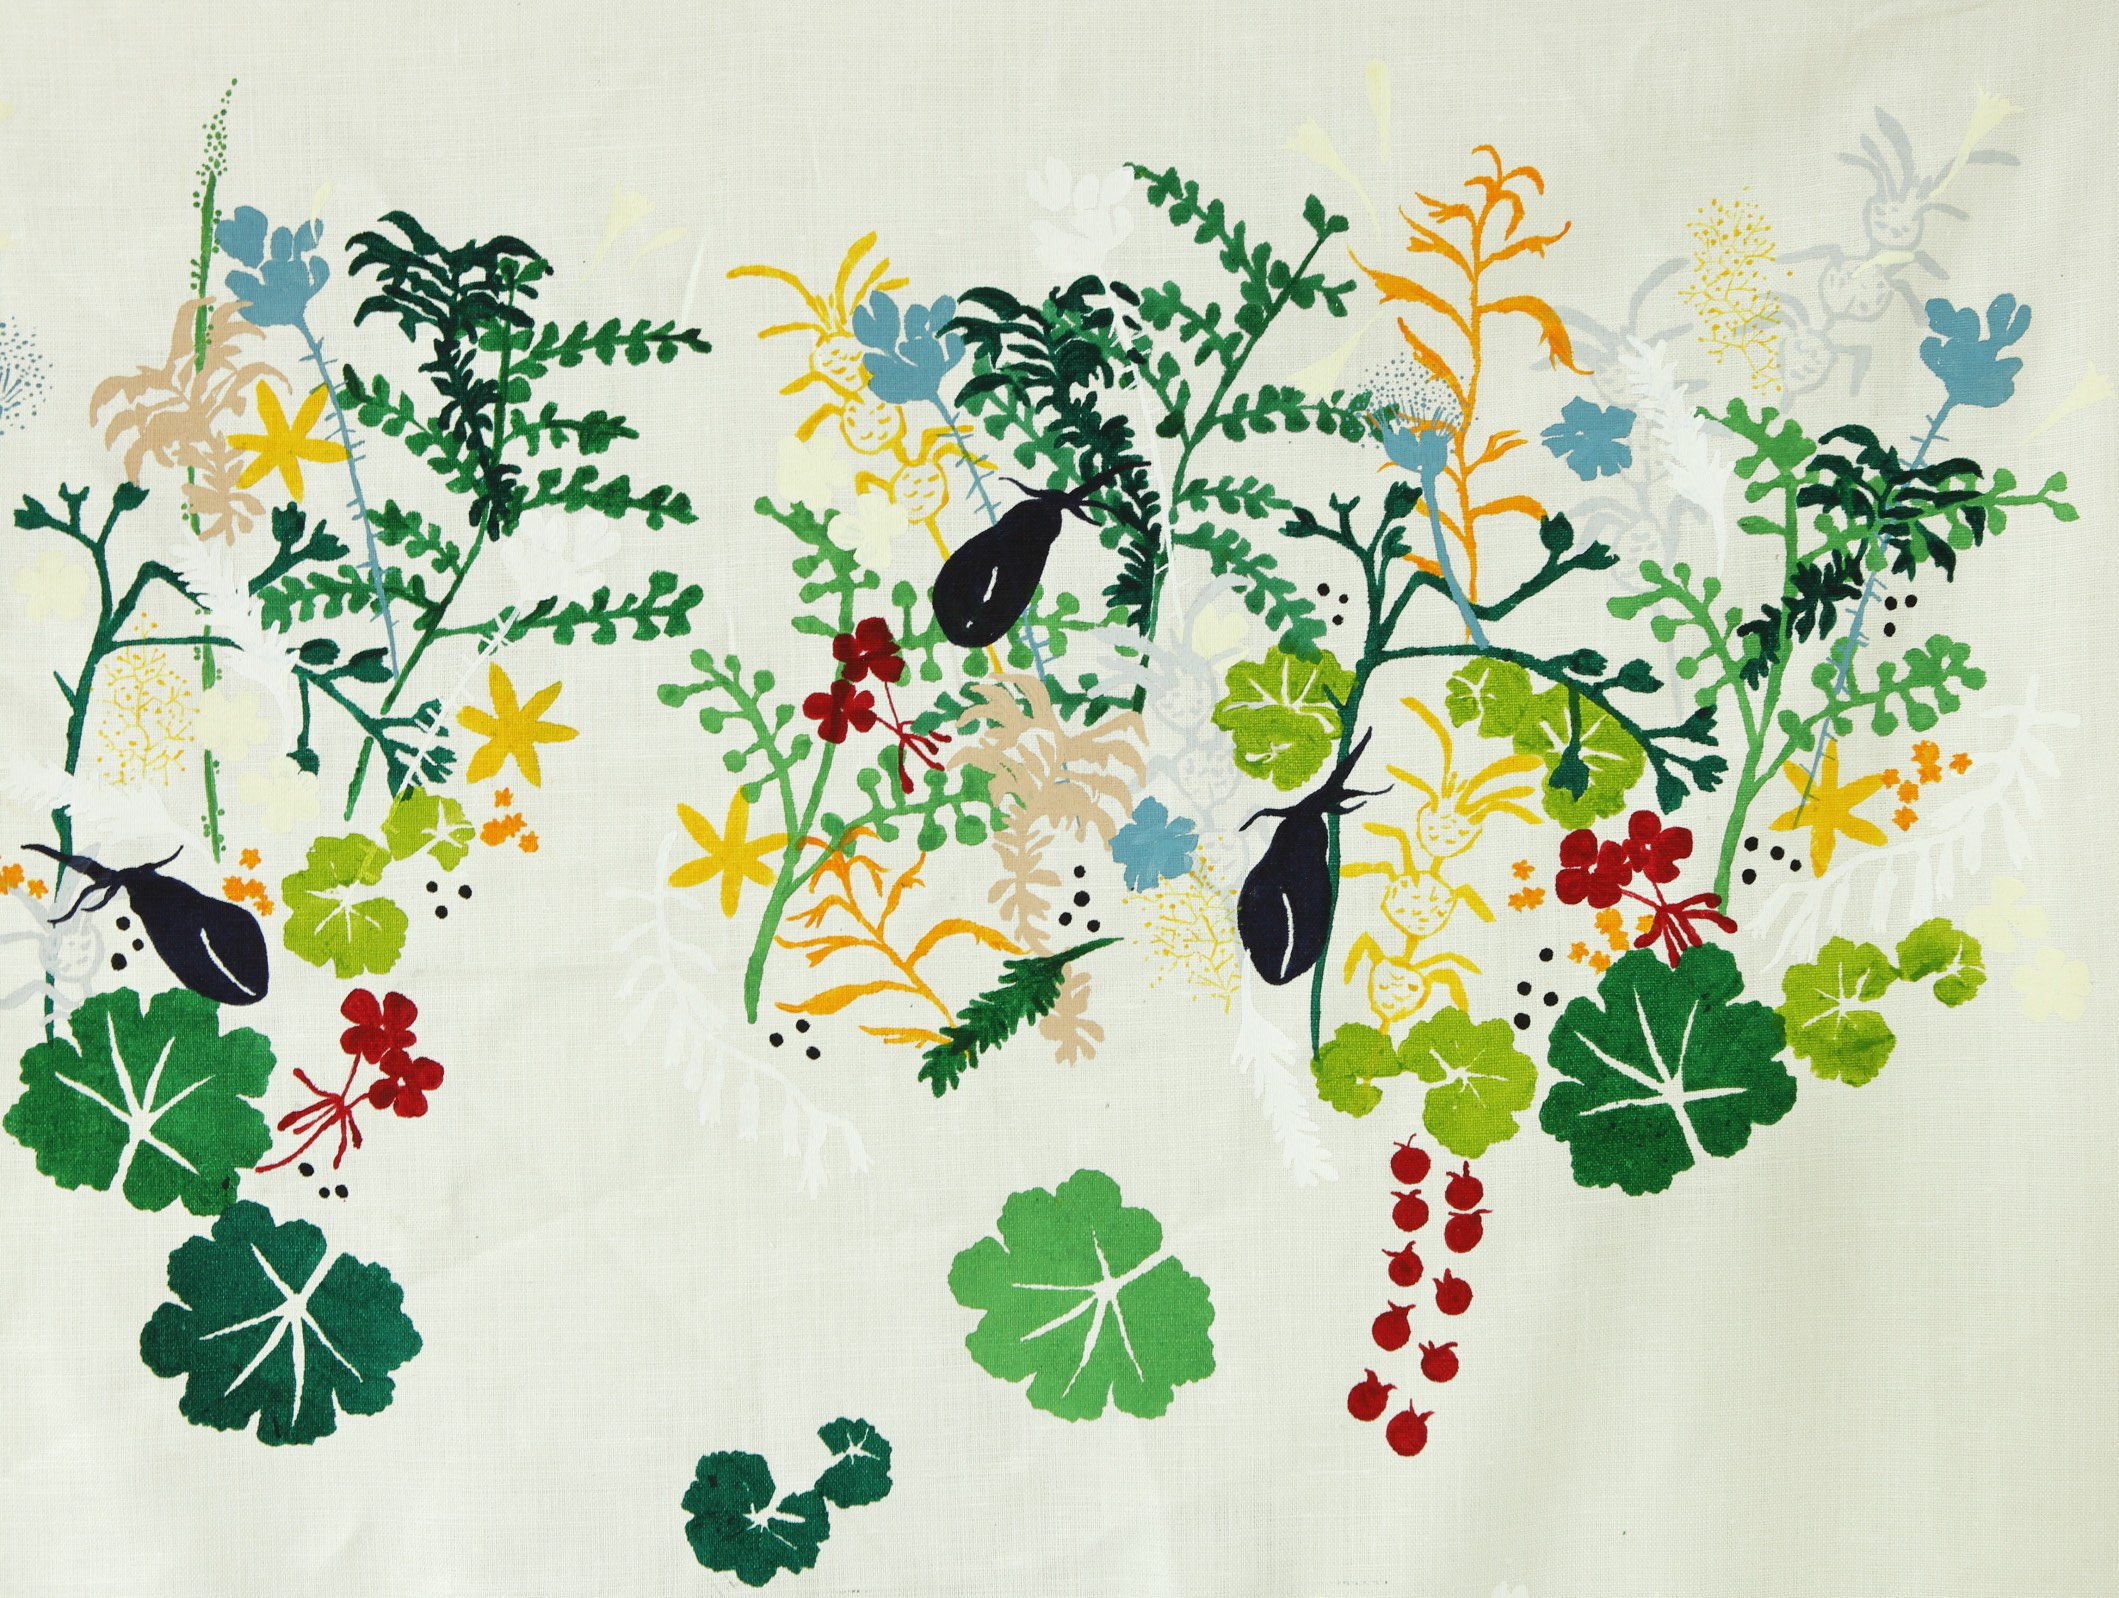 MOMAT artists textile Thicket Garden designed by David Bellamy